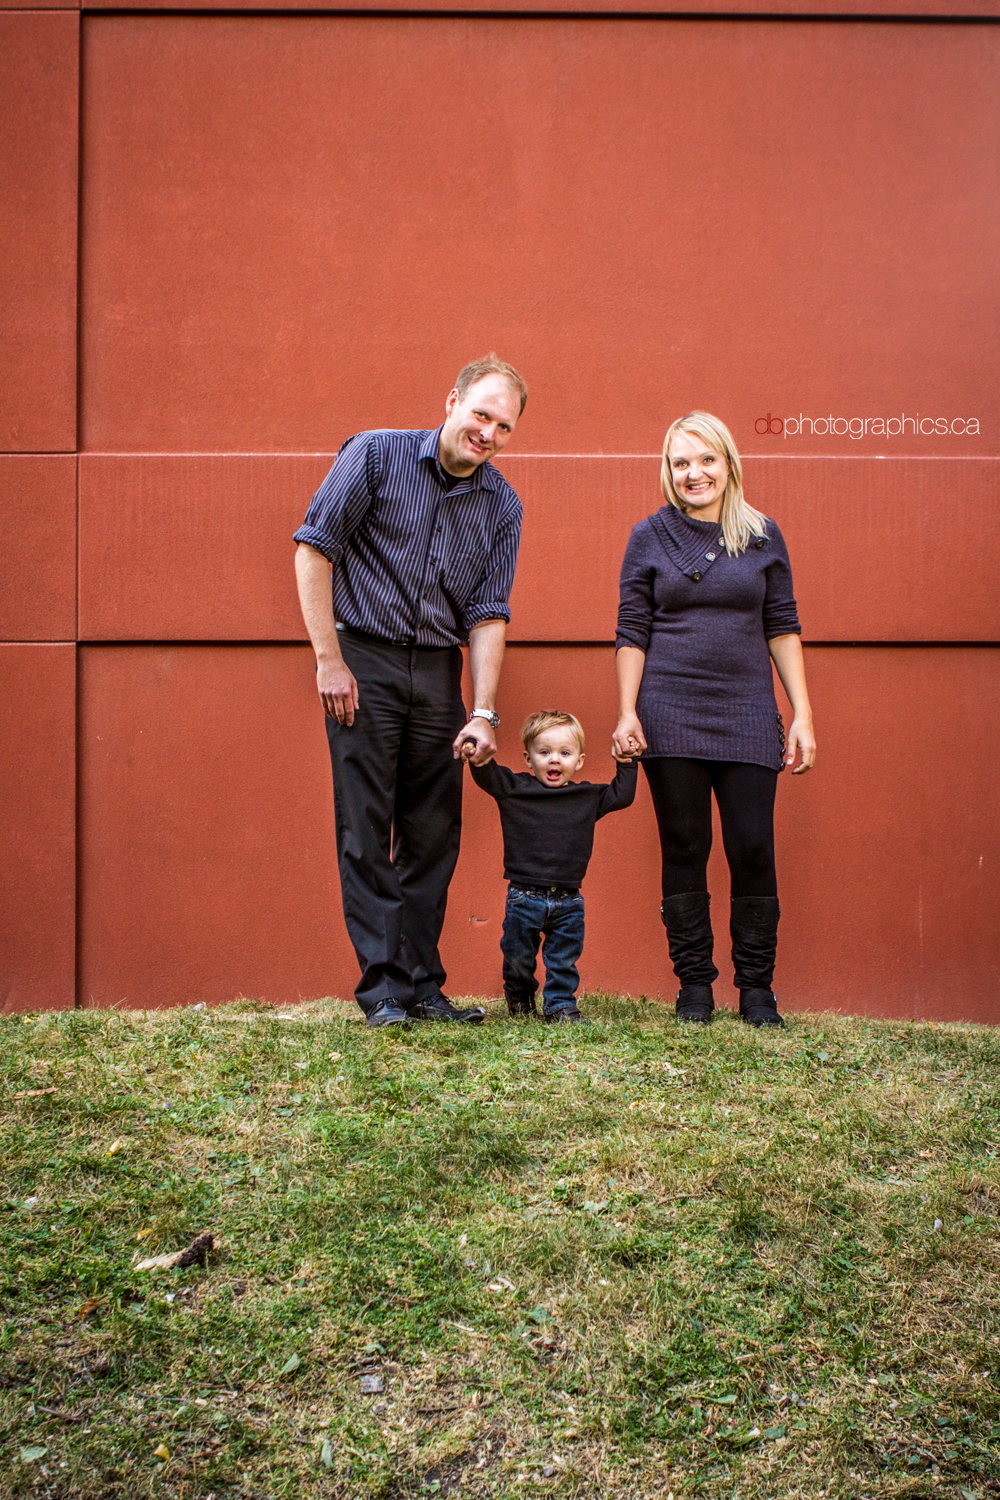 Biddy, Scott & Thomas Family Shoot - 20130923 - 0048.jpg